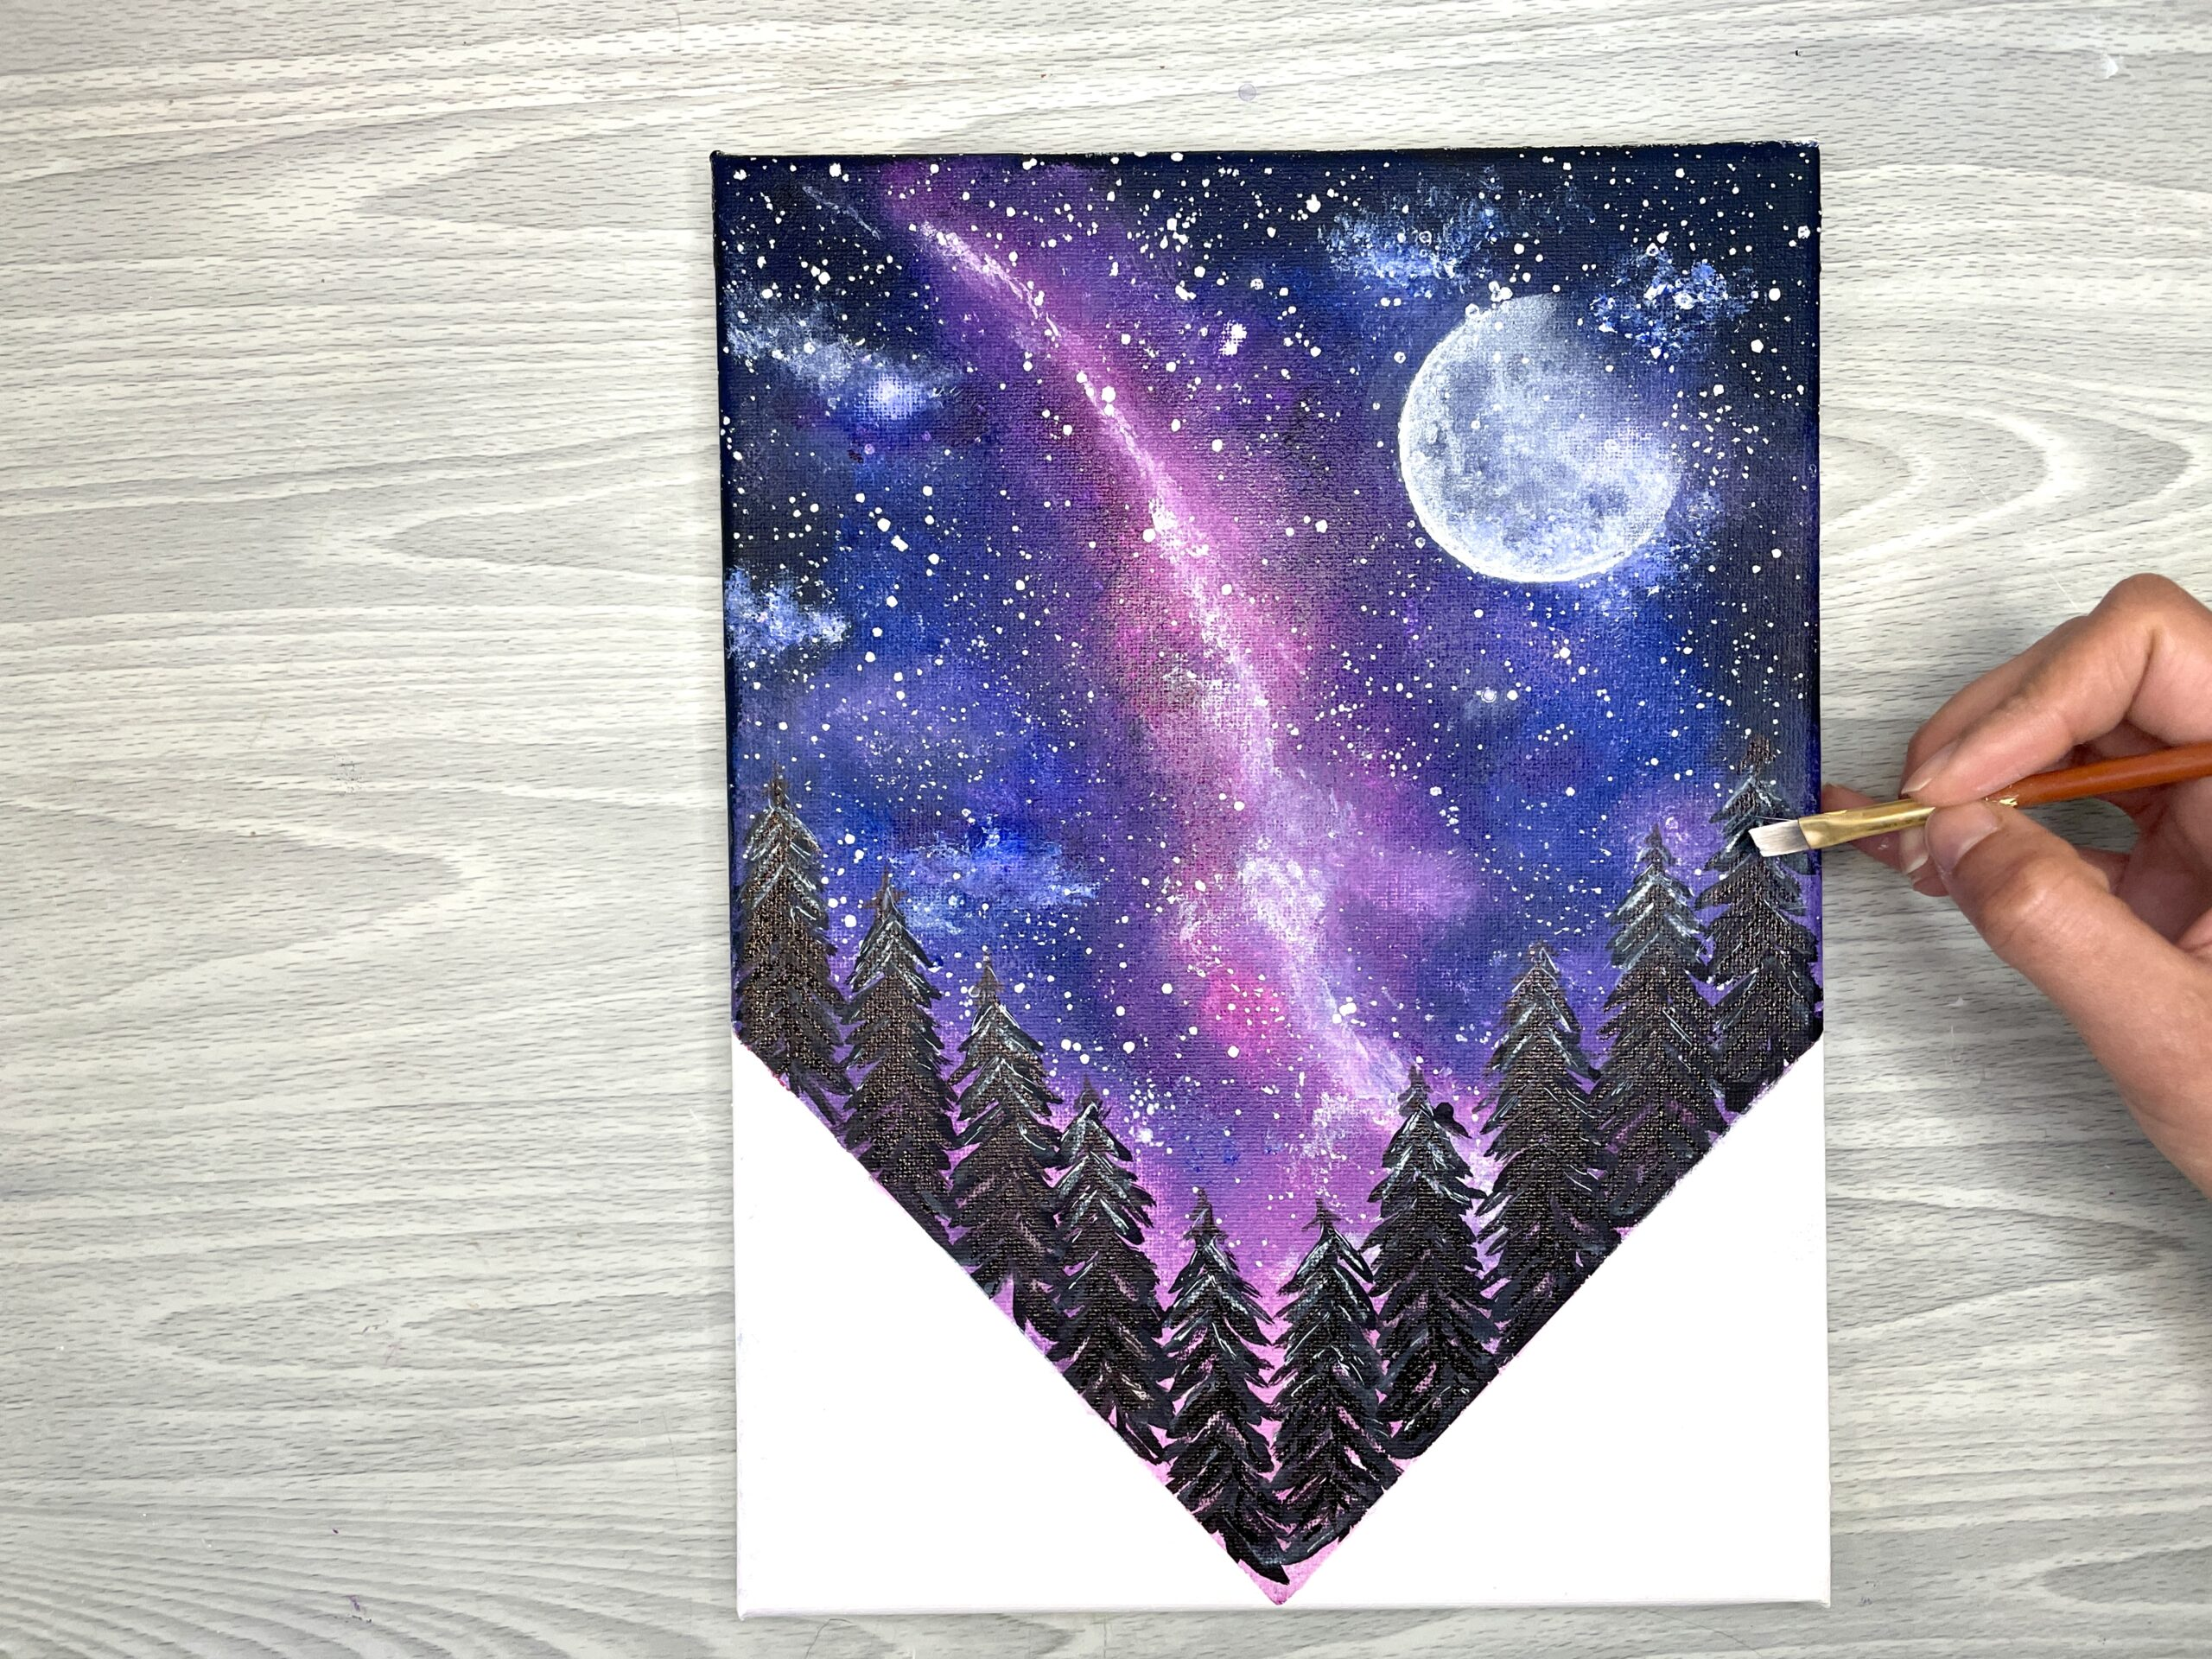 how to paint a galaxy night sky